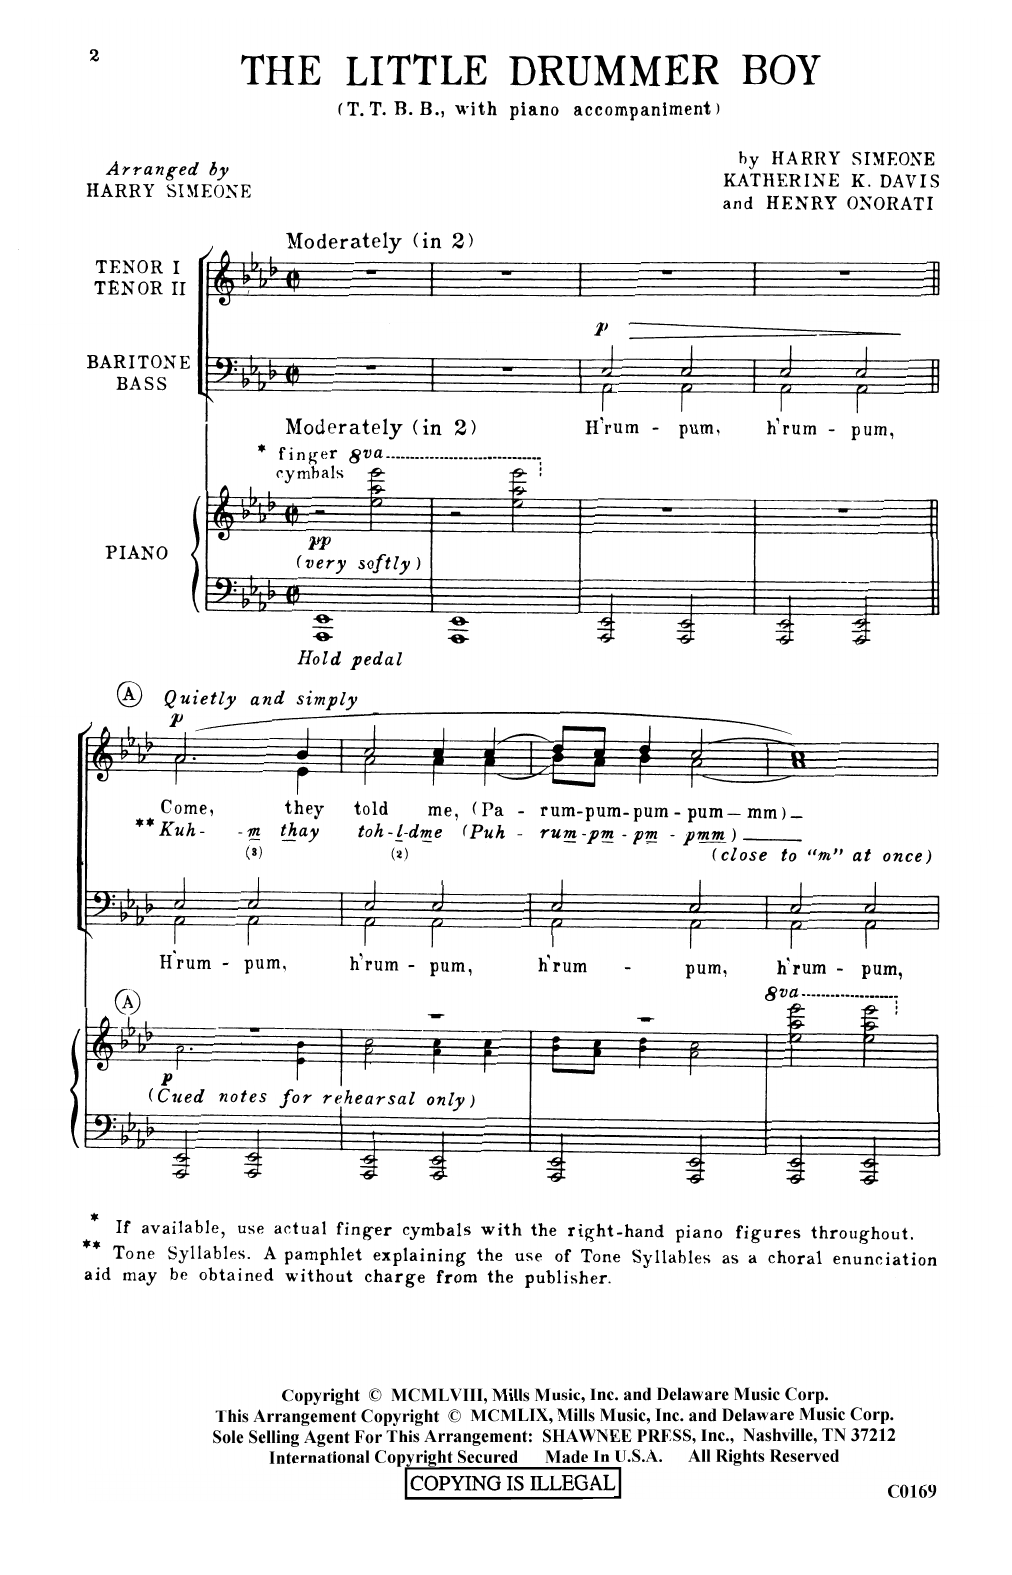 The Little Drummer Boy Sheet Music